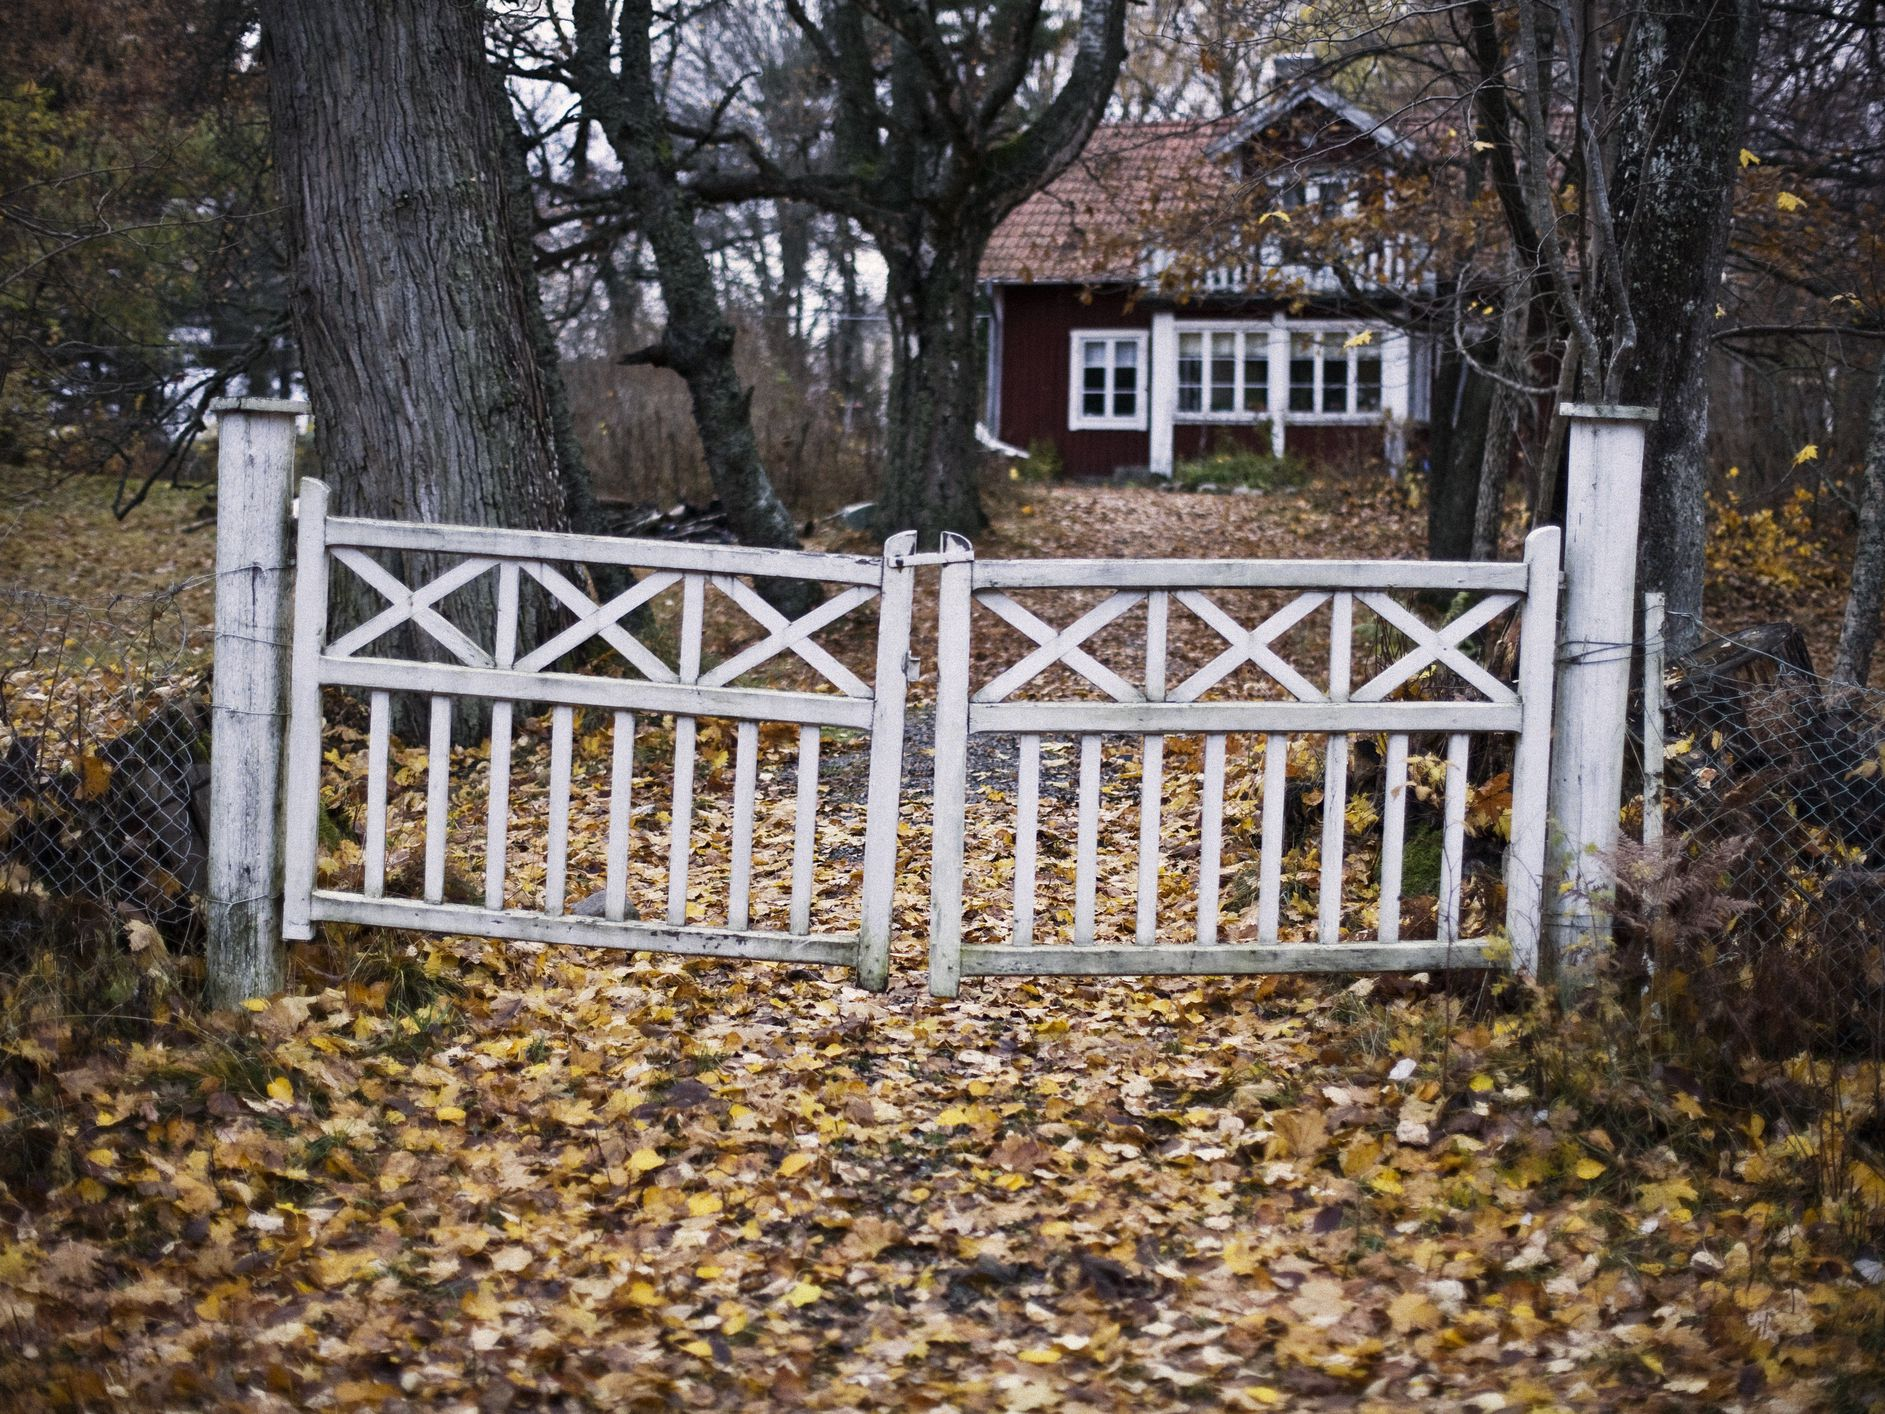 heavy duty steel small decorative indooroutdoor firewood.htm how to fix a sagging wood or metal fence gate  fix a sagging wood or metal fence gate